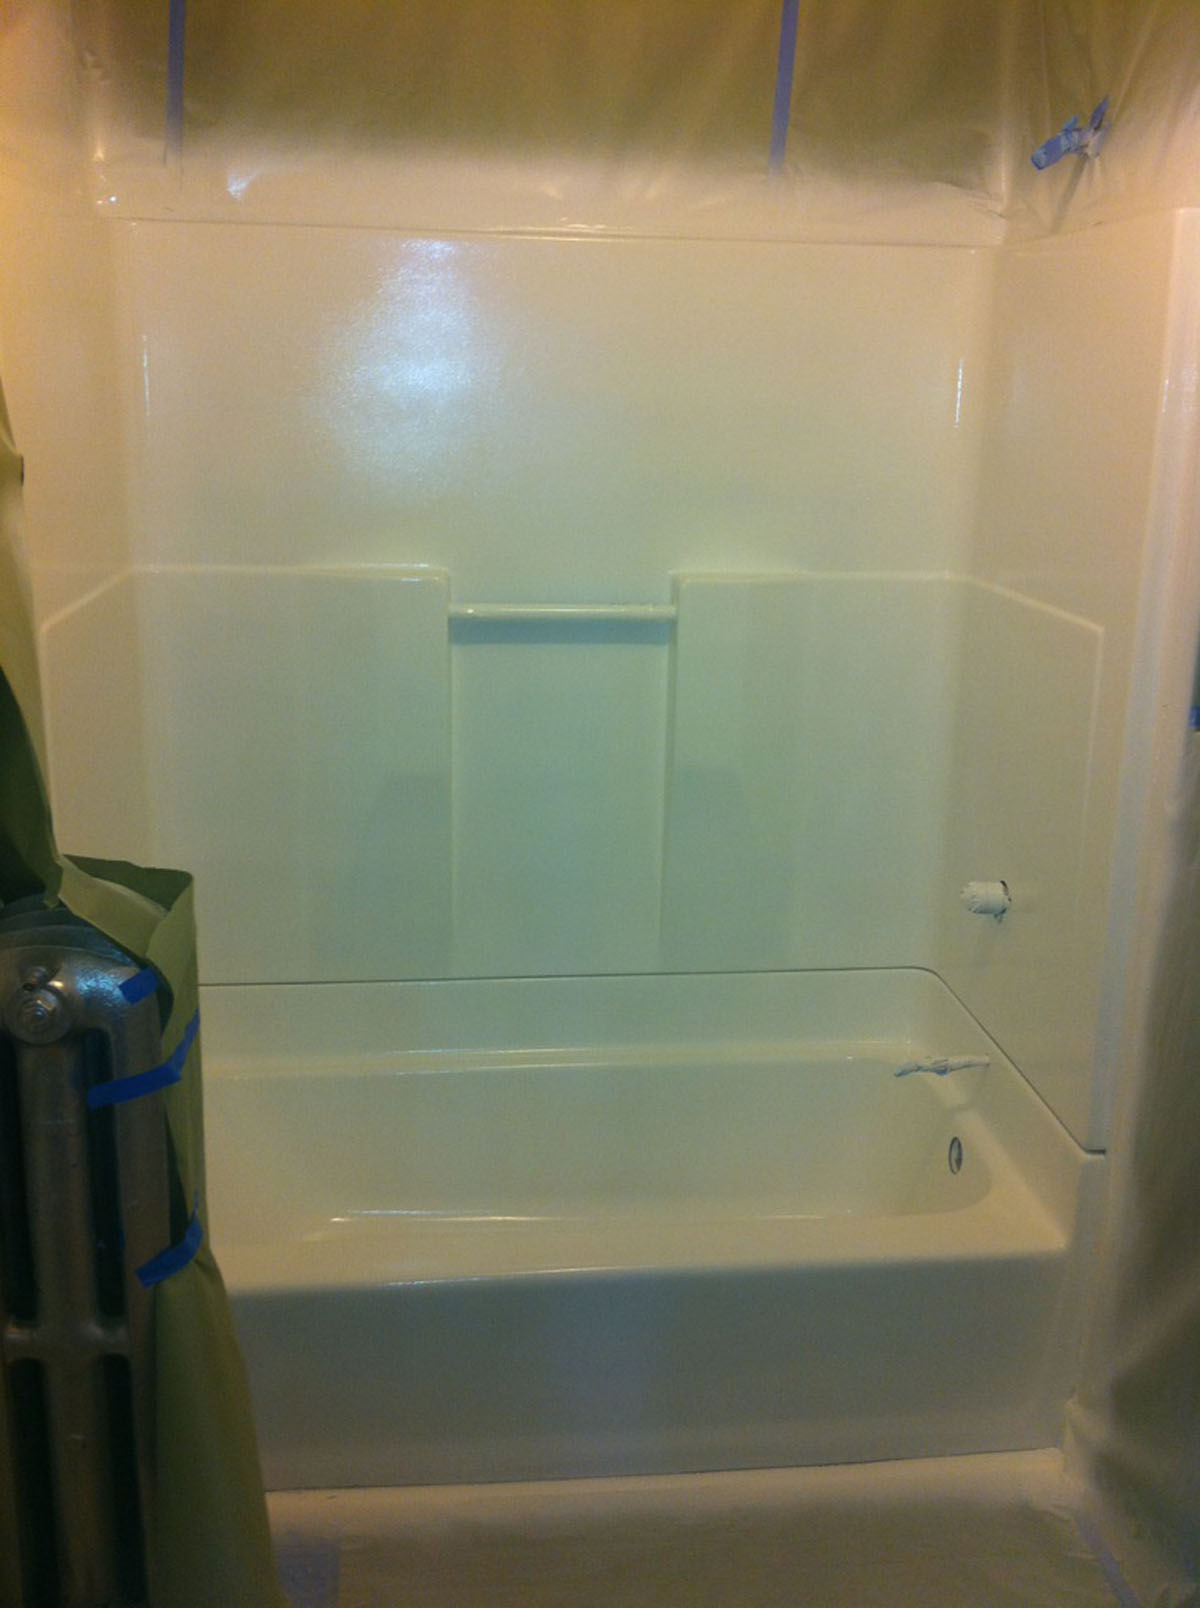 Refinished fiberglass tub and shower surround after refinishing